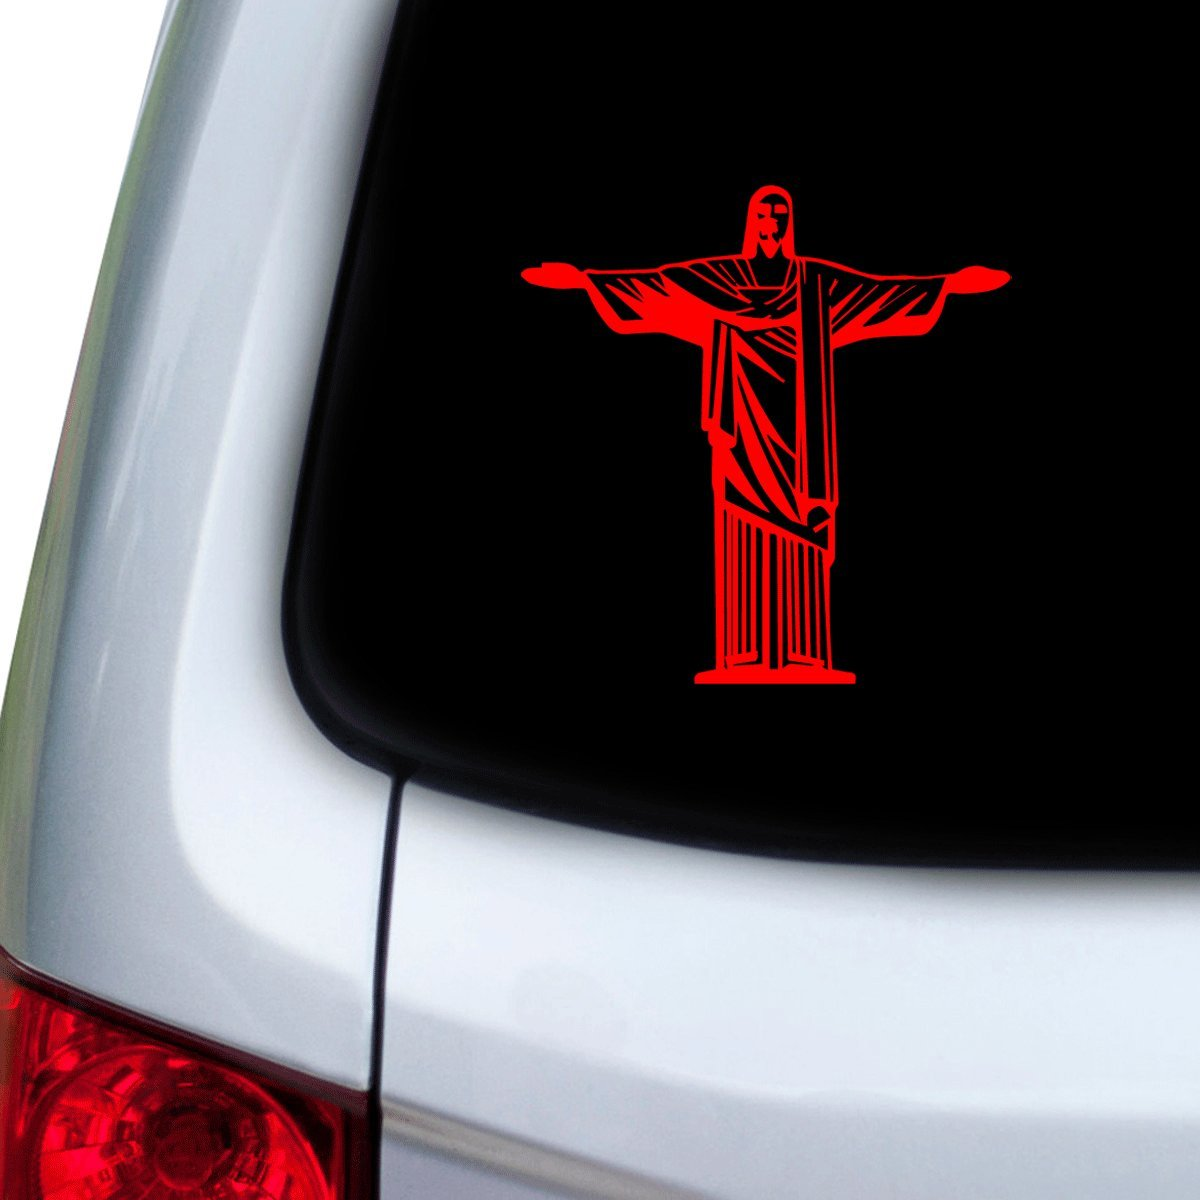 StickAny Car and Auto Decal Series Jesus Arms Wide Open Sticker for Windows Hoods Doors Red